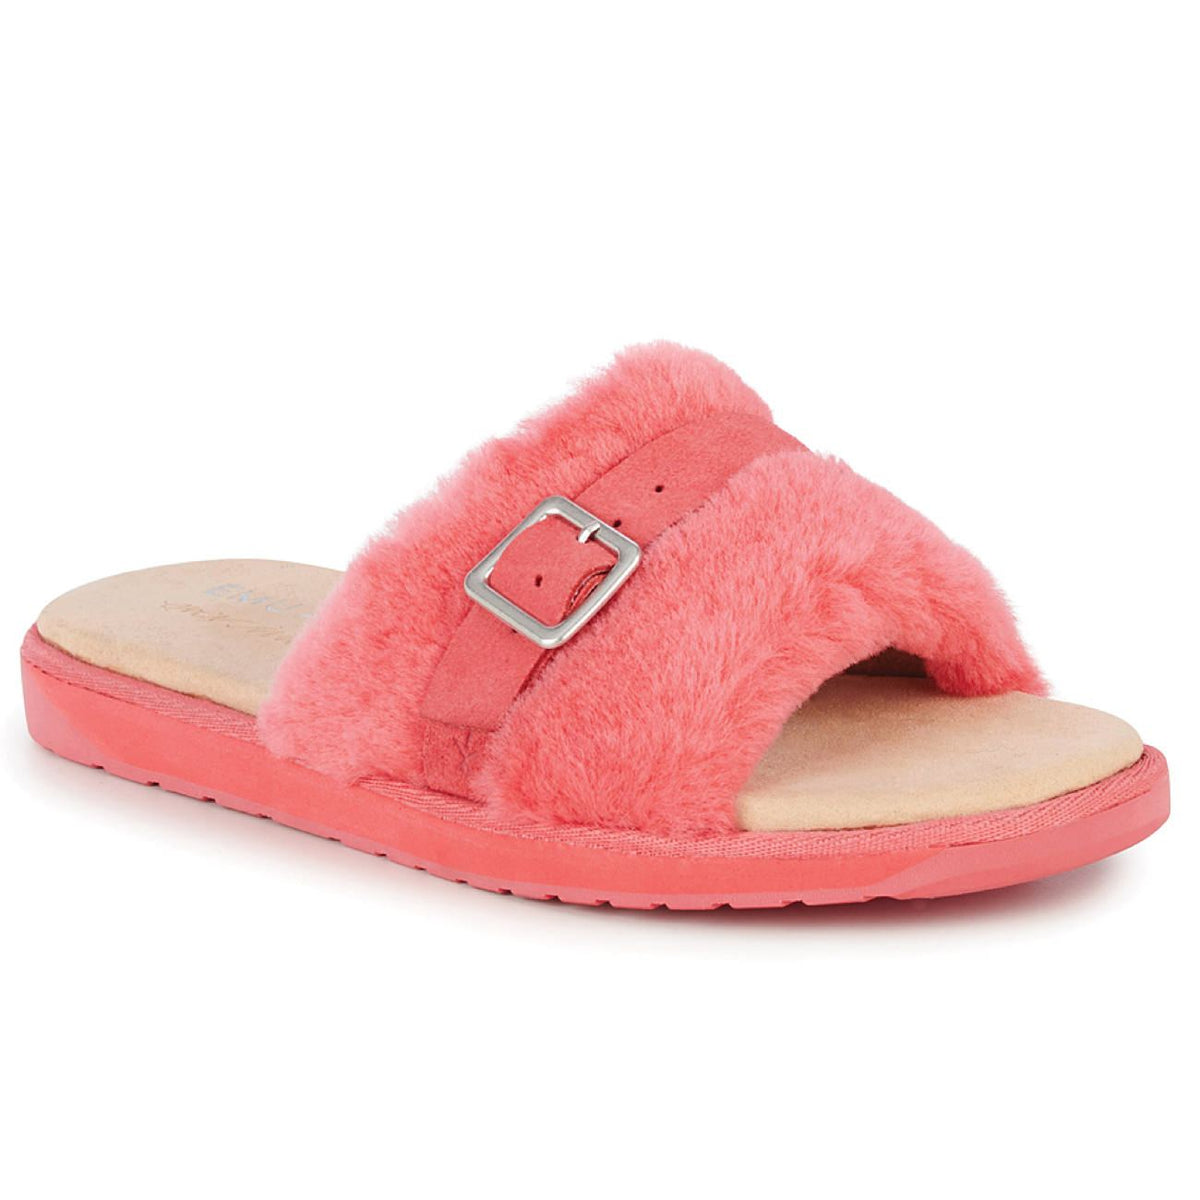 EMU, Warden Stinger Slide, Australian Sheepskin, Coral House Shoes Emu Australia Coral W5